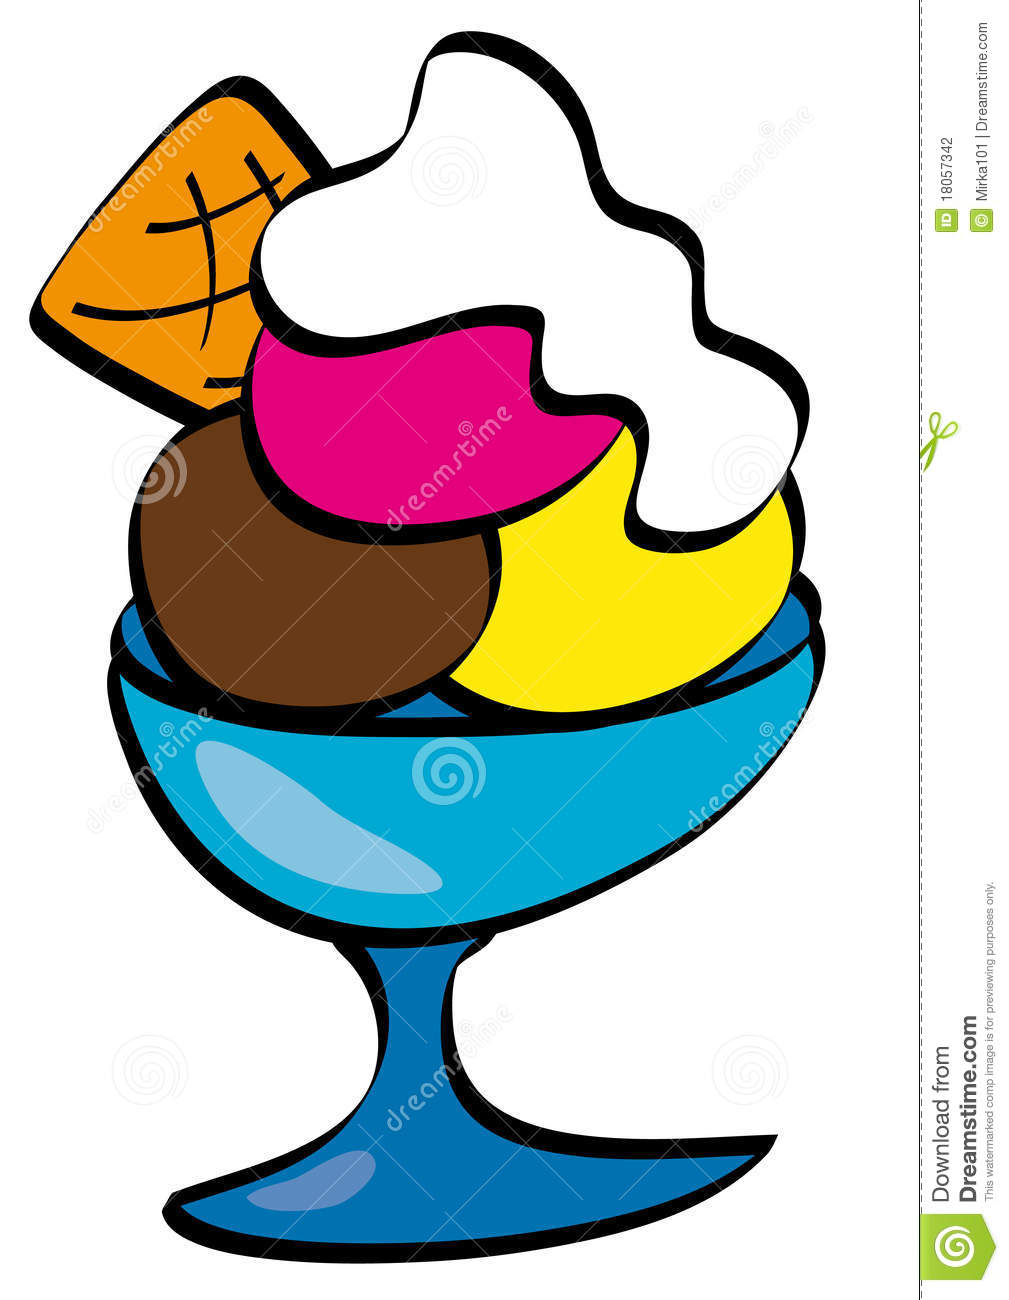 Ice Cream Bowl Clipart | Clipart Panda - Free Clipart Images